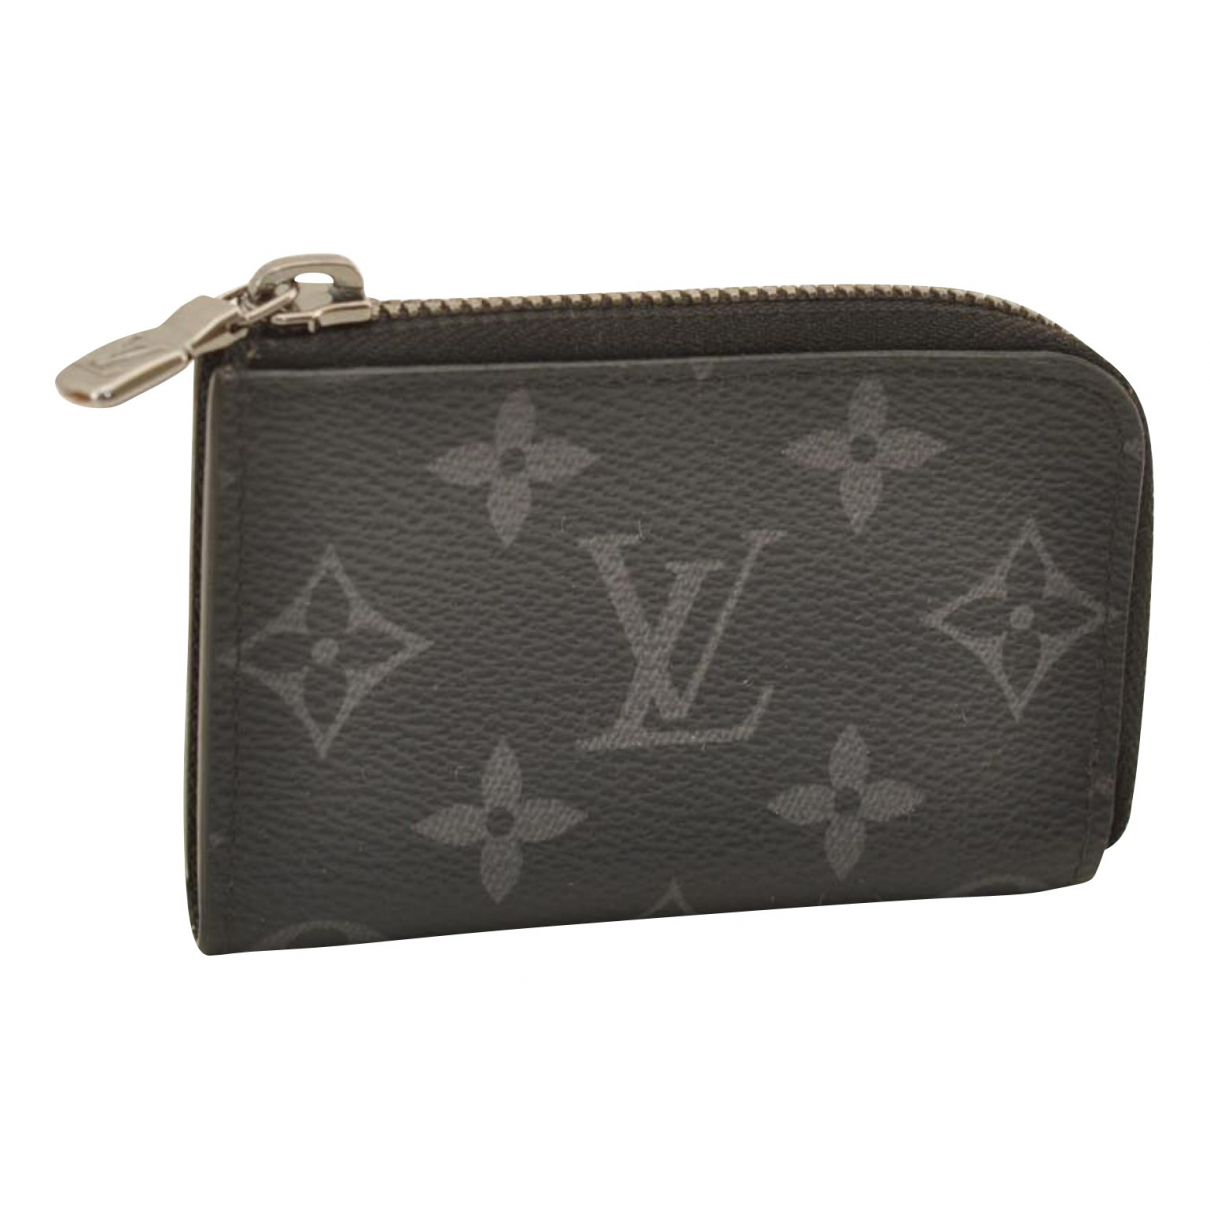 Louis Vuitton \N Kleinlederwaren in  Grau Leinen